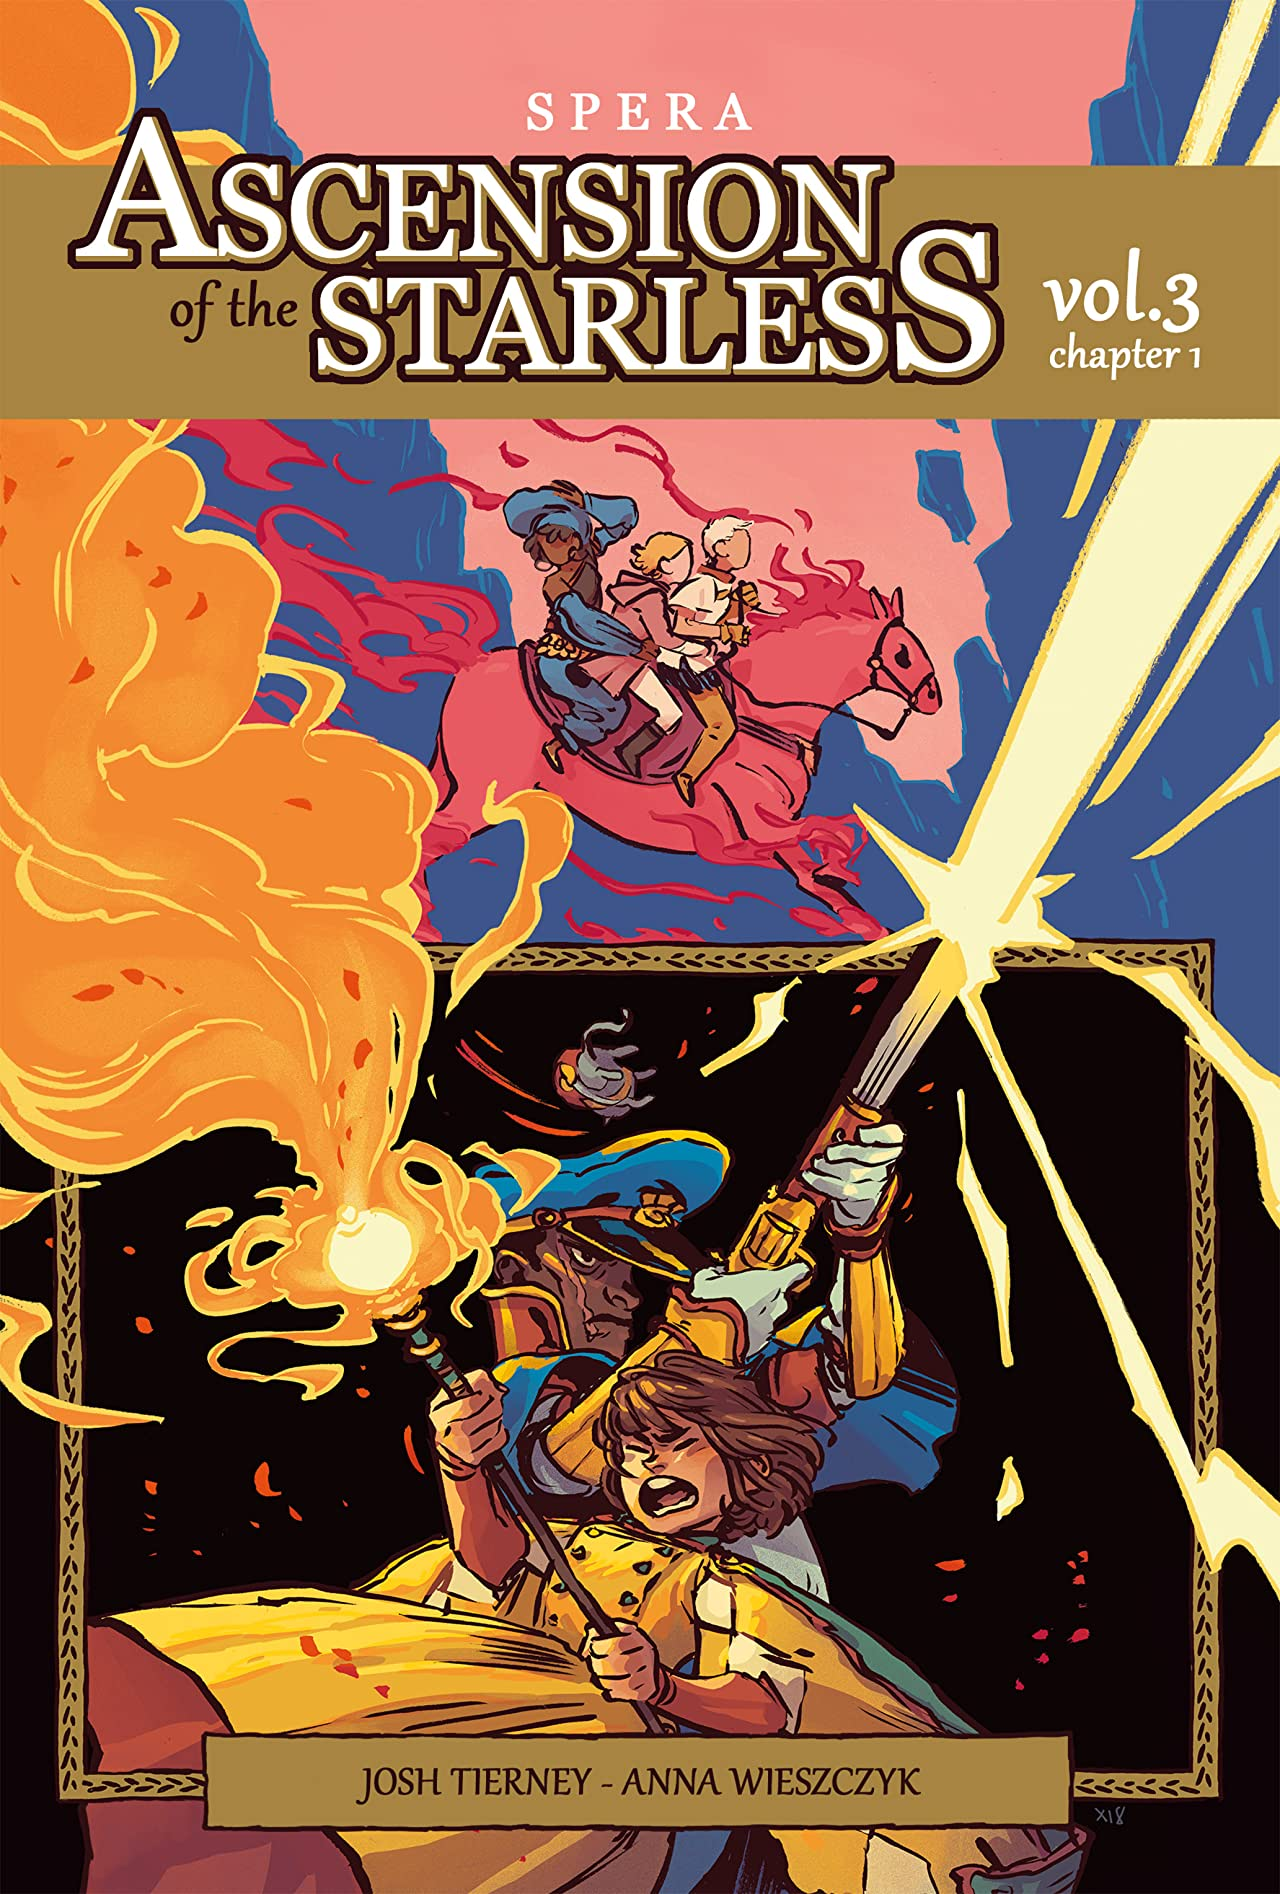 Spera: Ascension of the Starless Vol. 3 #1